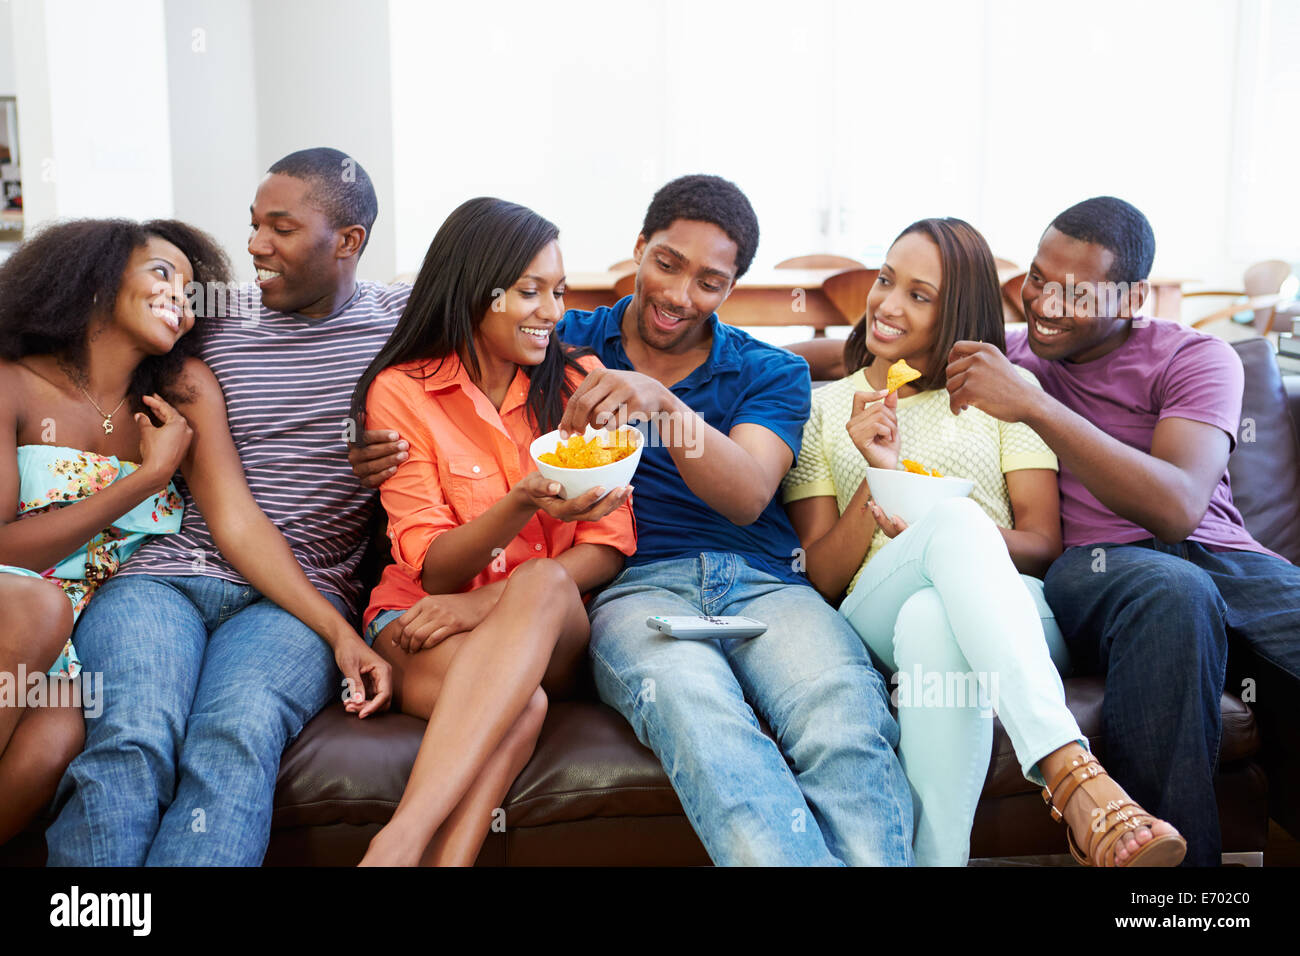 Group Of Friends Sitting On Sofa Watching TV Together - Stock Image